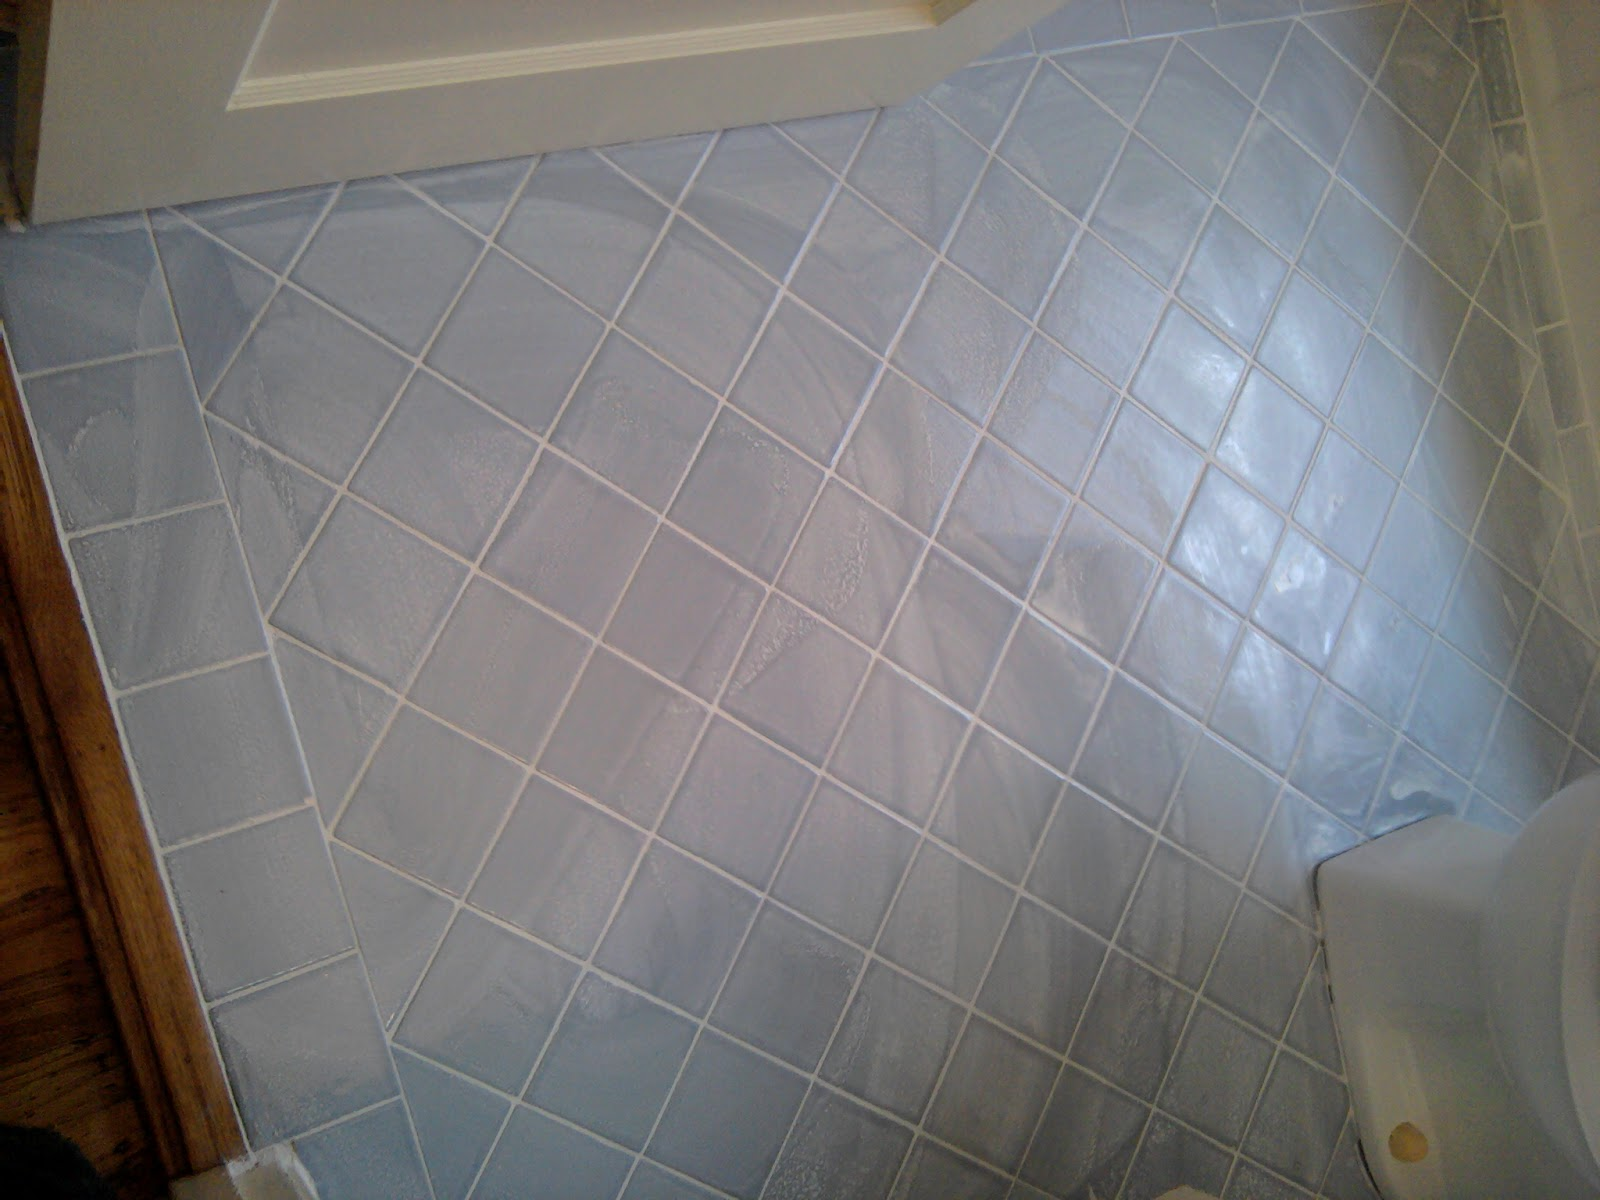 Regrout bathroom tile